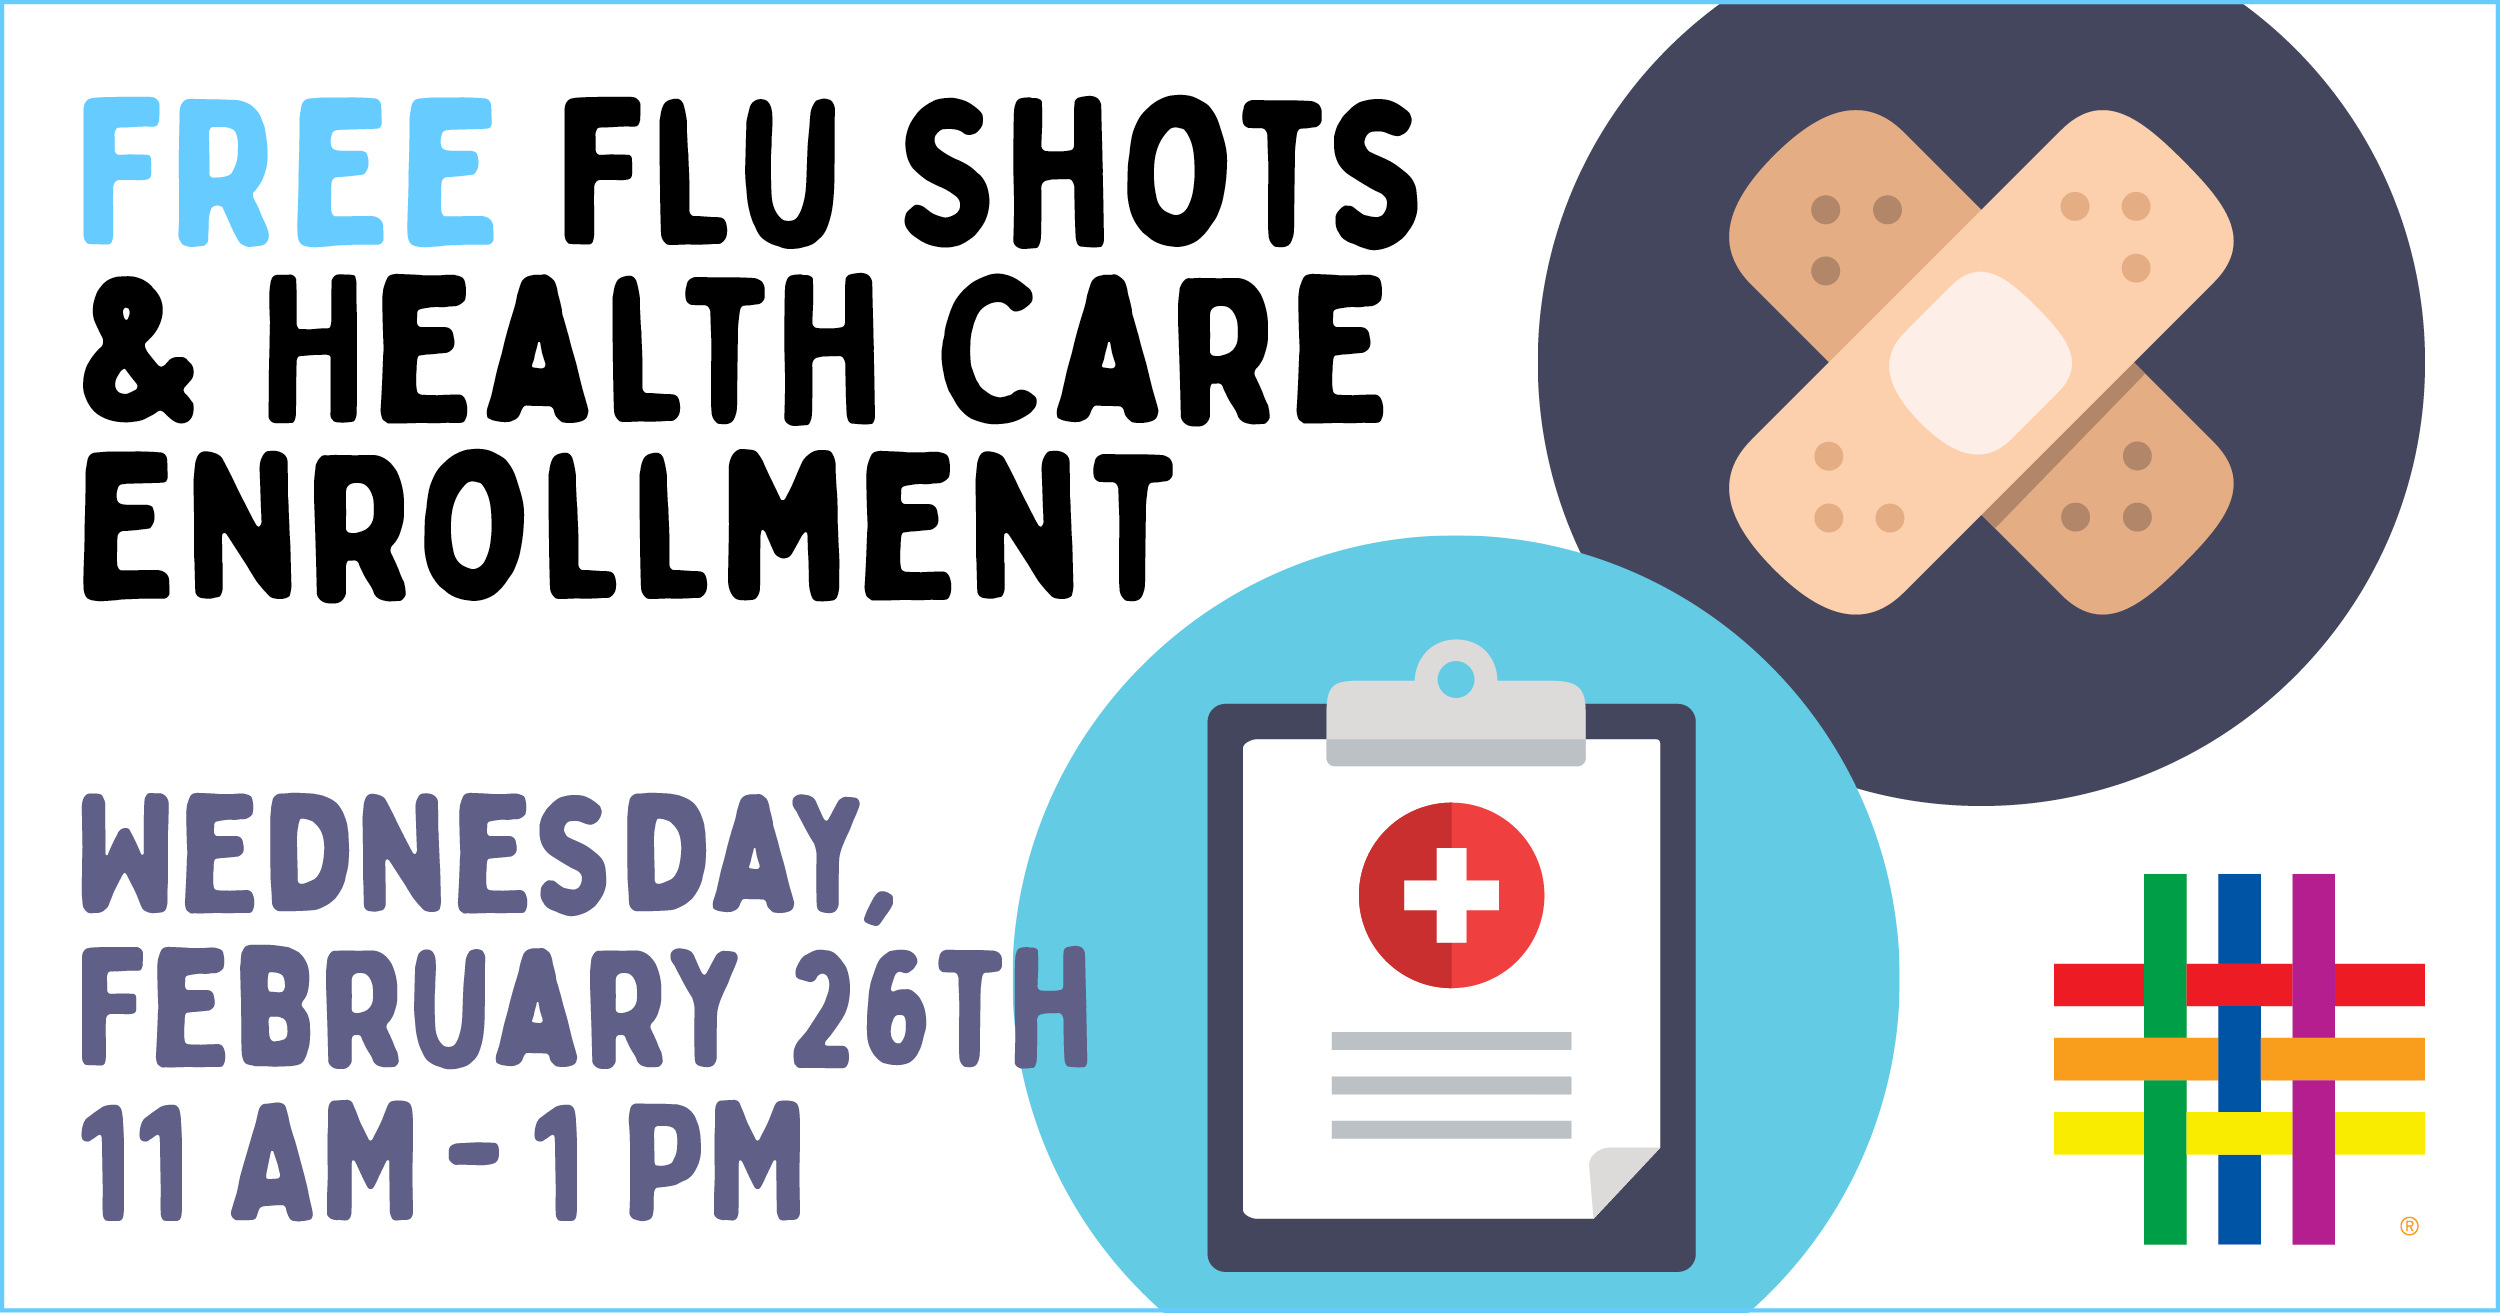 FREE Flu Shots and Health Care Enrollment at Brooklyn Community Pride Center